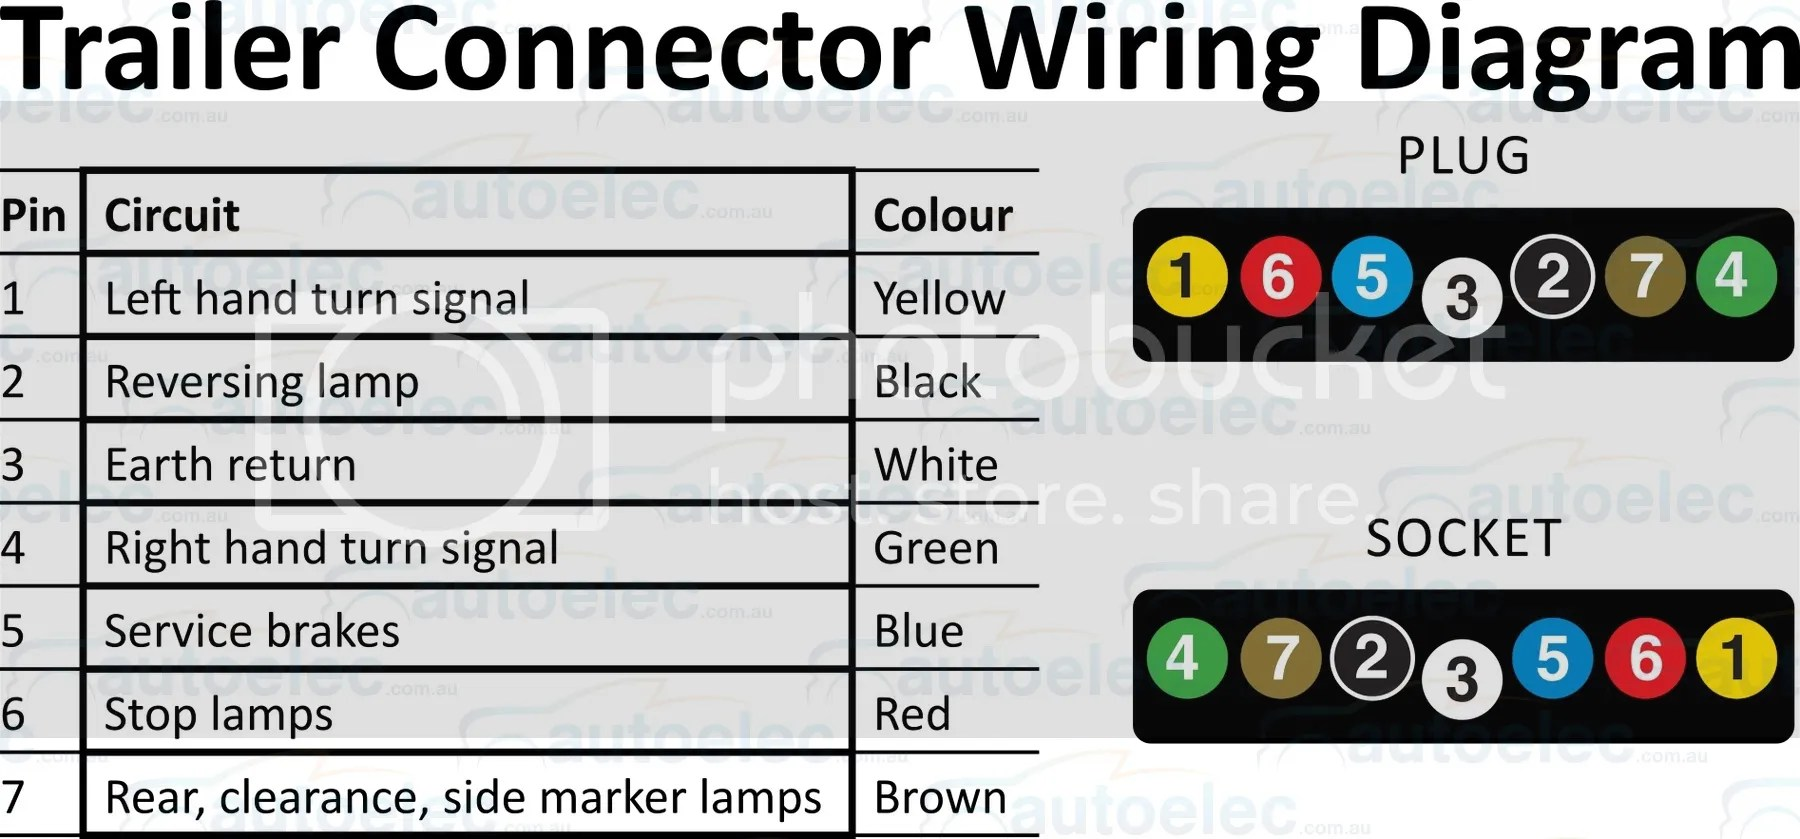 Trailer Connector Wiring Diagrams?resize=665%2C310 7 pin flat trailer wiring diagram wiring diagram 7 Pin Trailer Wiring Diagram at edmiracle.co